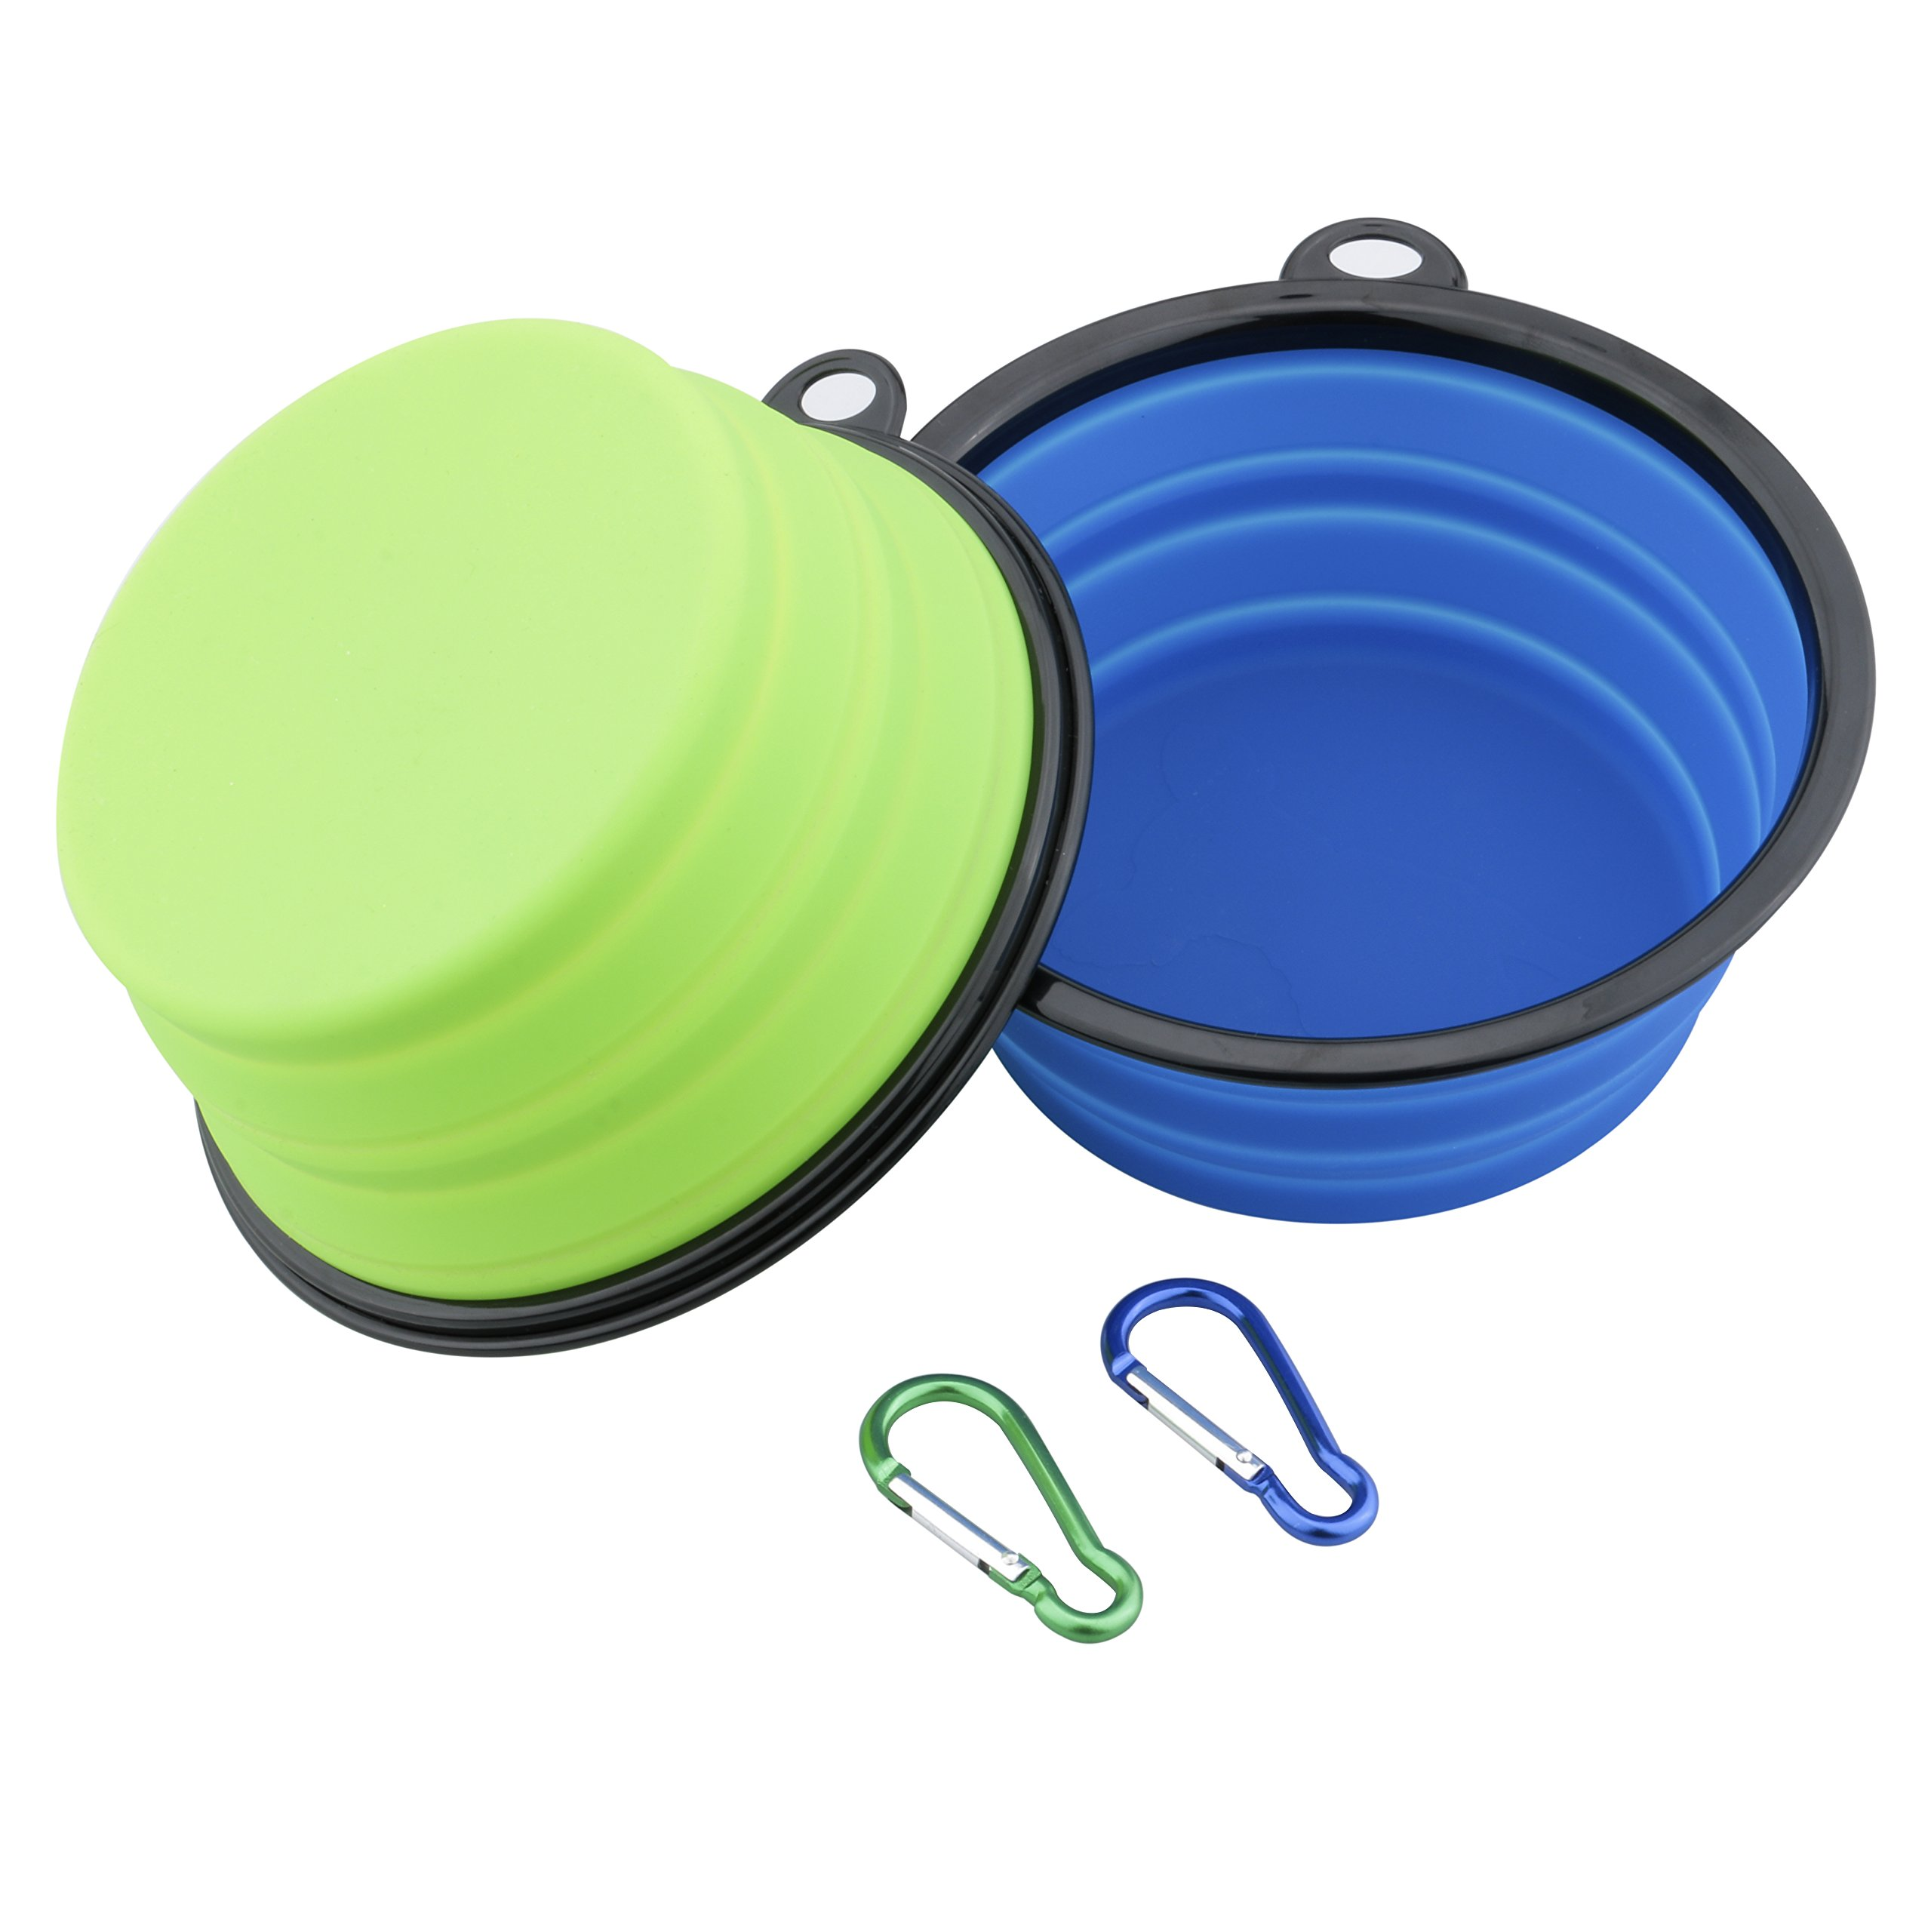 Leeko Extra Large 2 Pack Collapsible Pet Bowls,7'' Diameter Silicone Folding Portable Bowls for Cats Dogs with Carabiner Belt Clip,Green and Blue